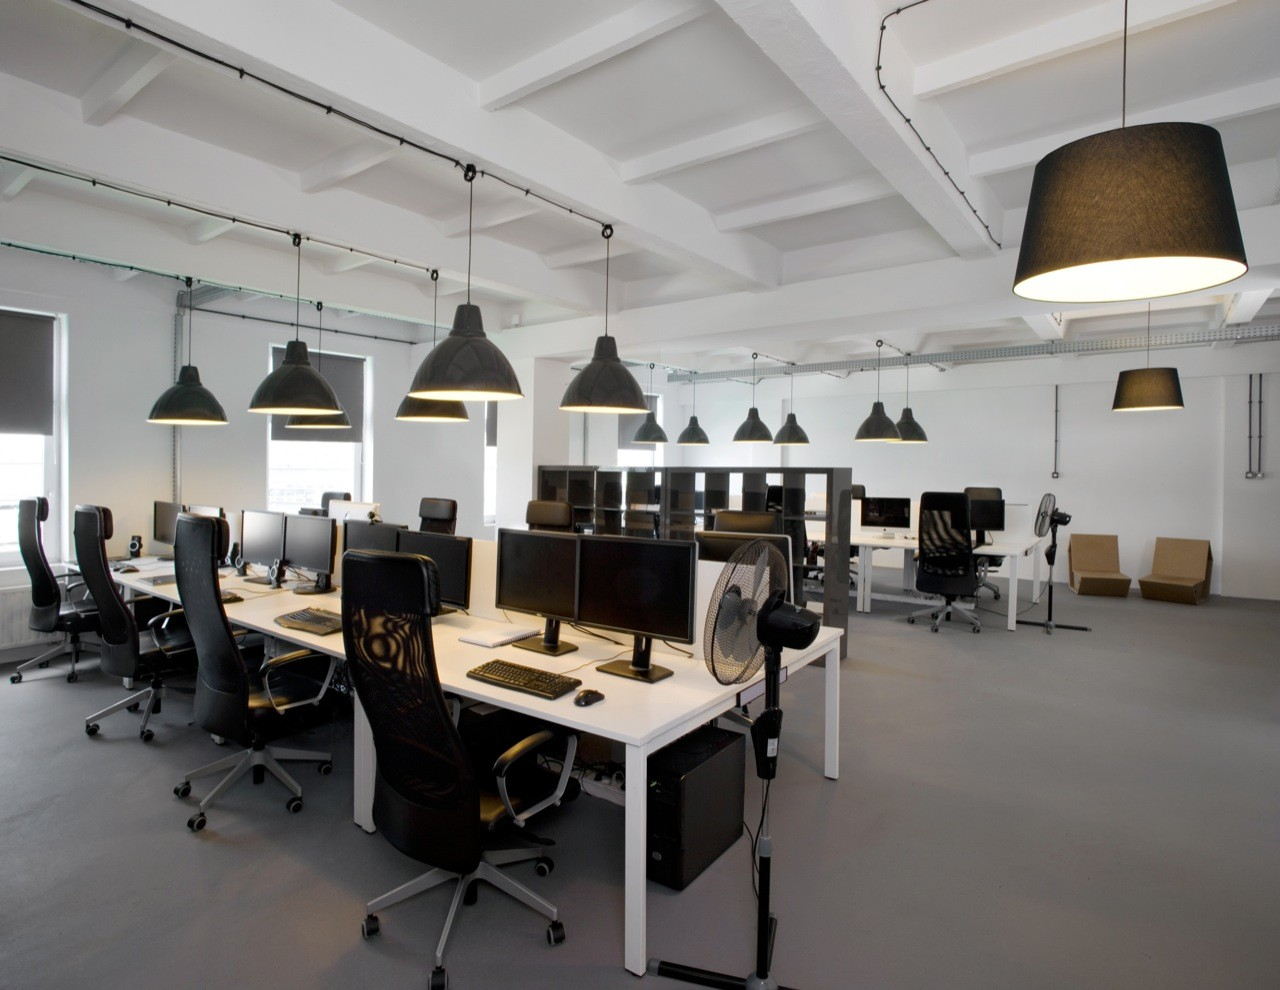 Gallery of pride and glory office morpho studio 2 for Total office design 50 contemporary workplaces